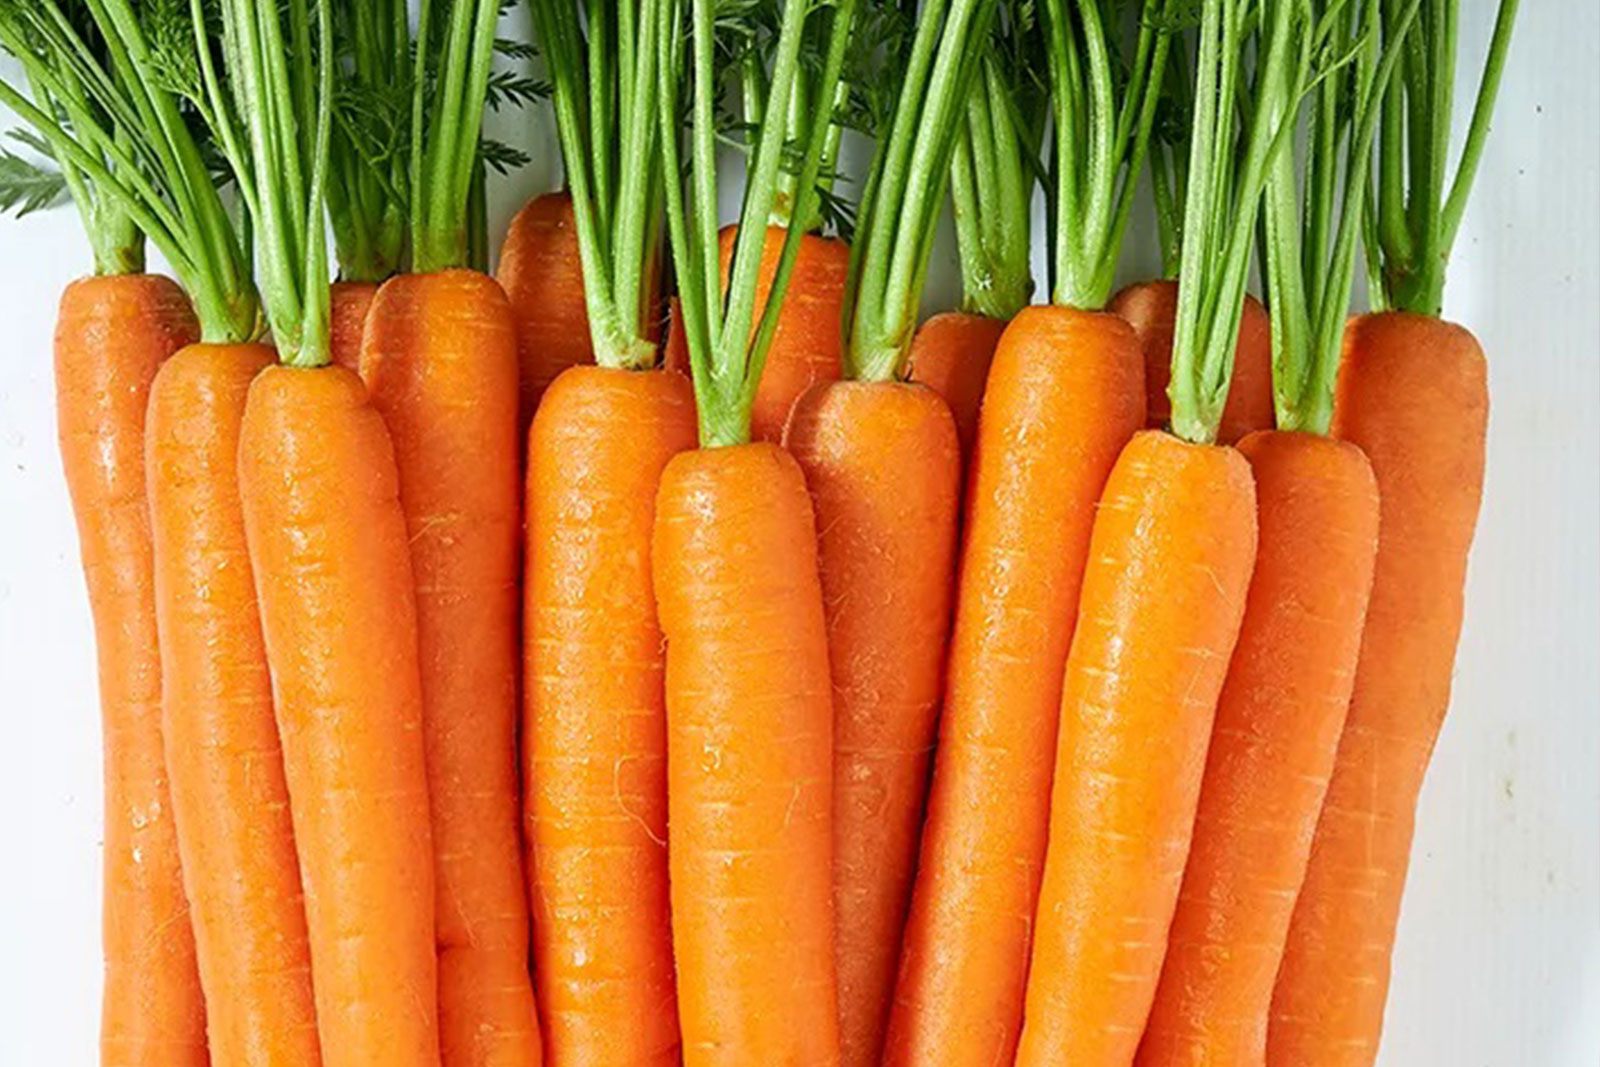 Carrot day featuring carrots (with stem)